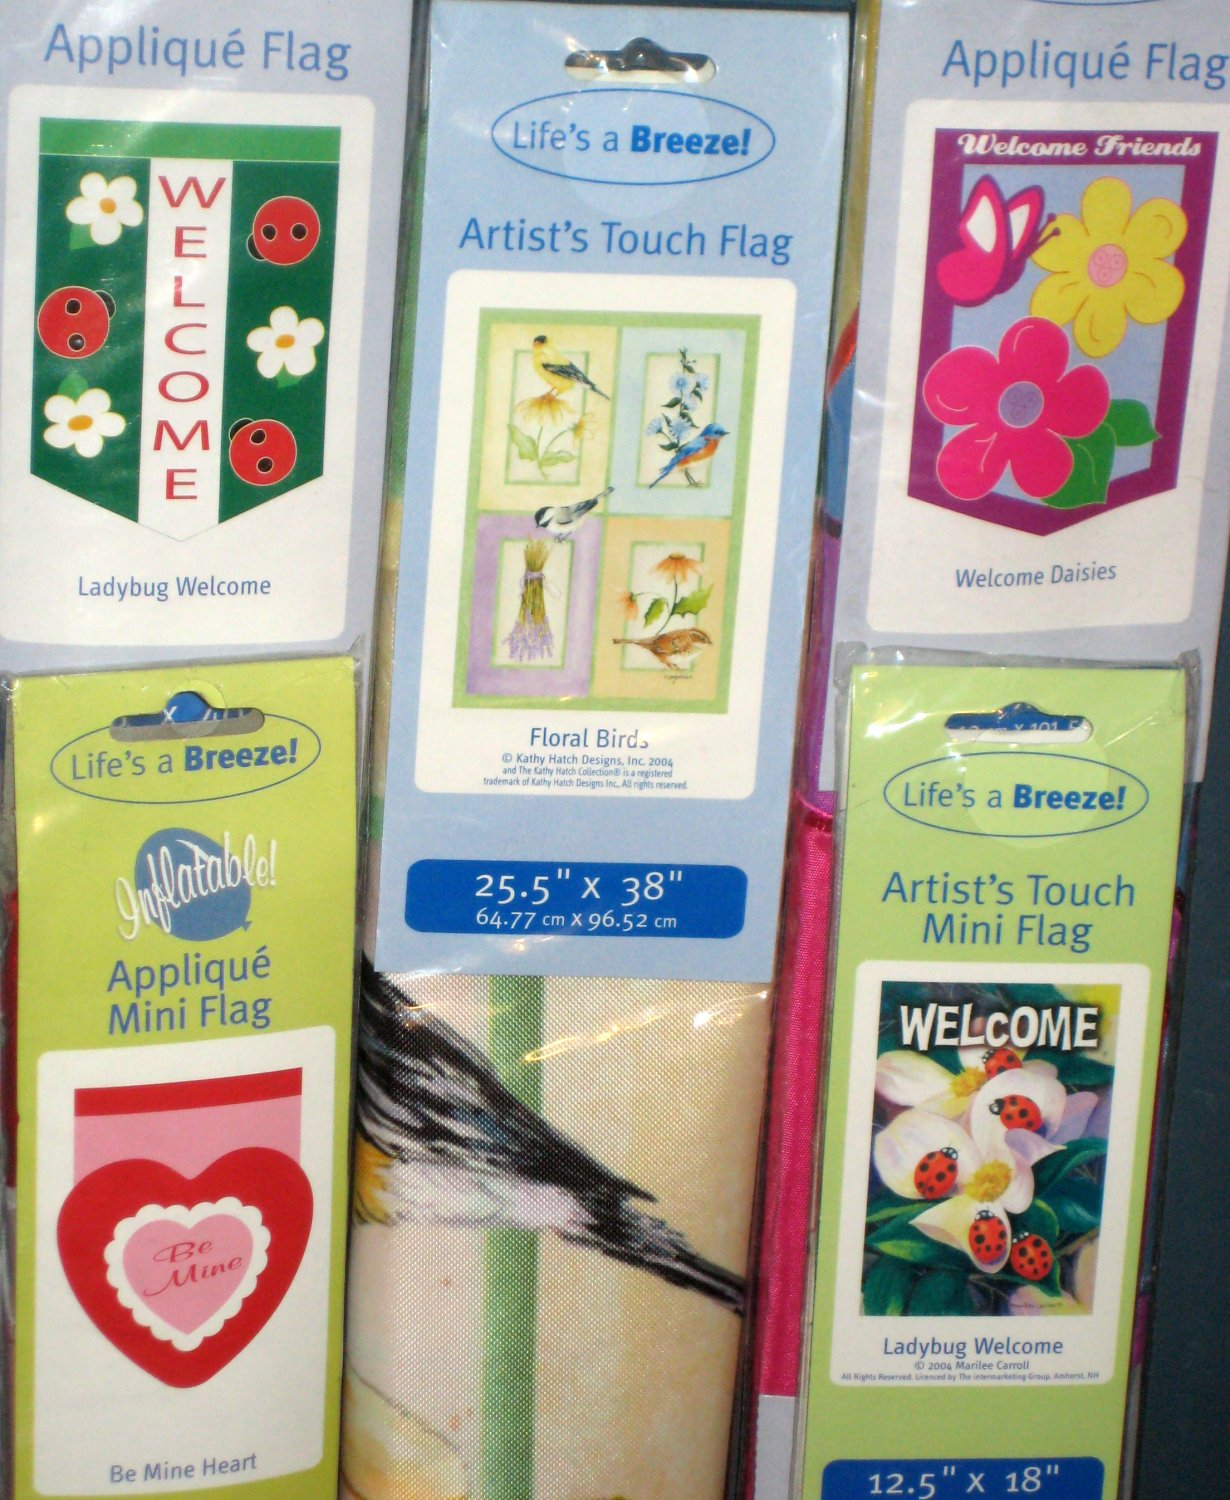 Lot 17 Decorative Garden Flags 5 Different Ladybug Heart Floral Birds Daisies 28 x 40 11 x 15 NIP